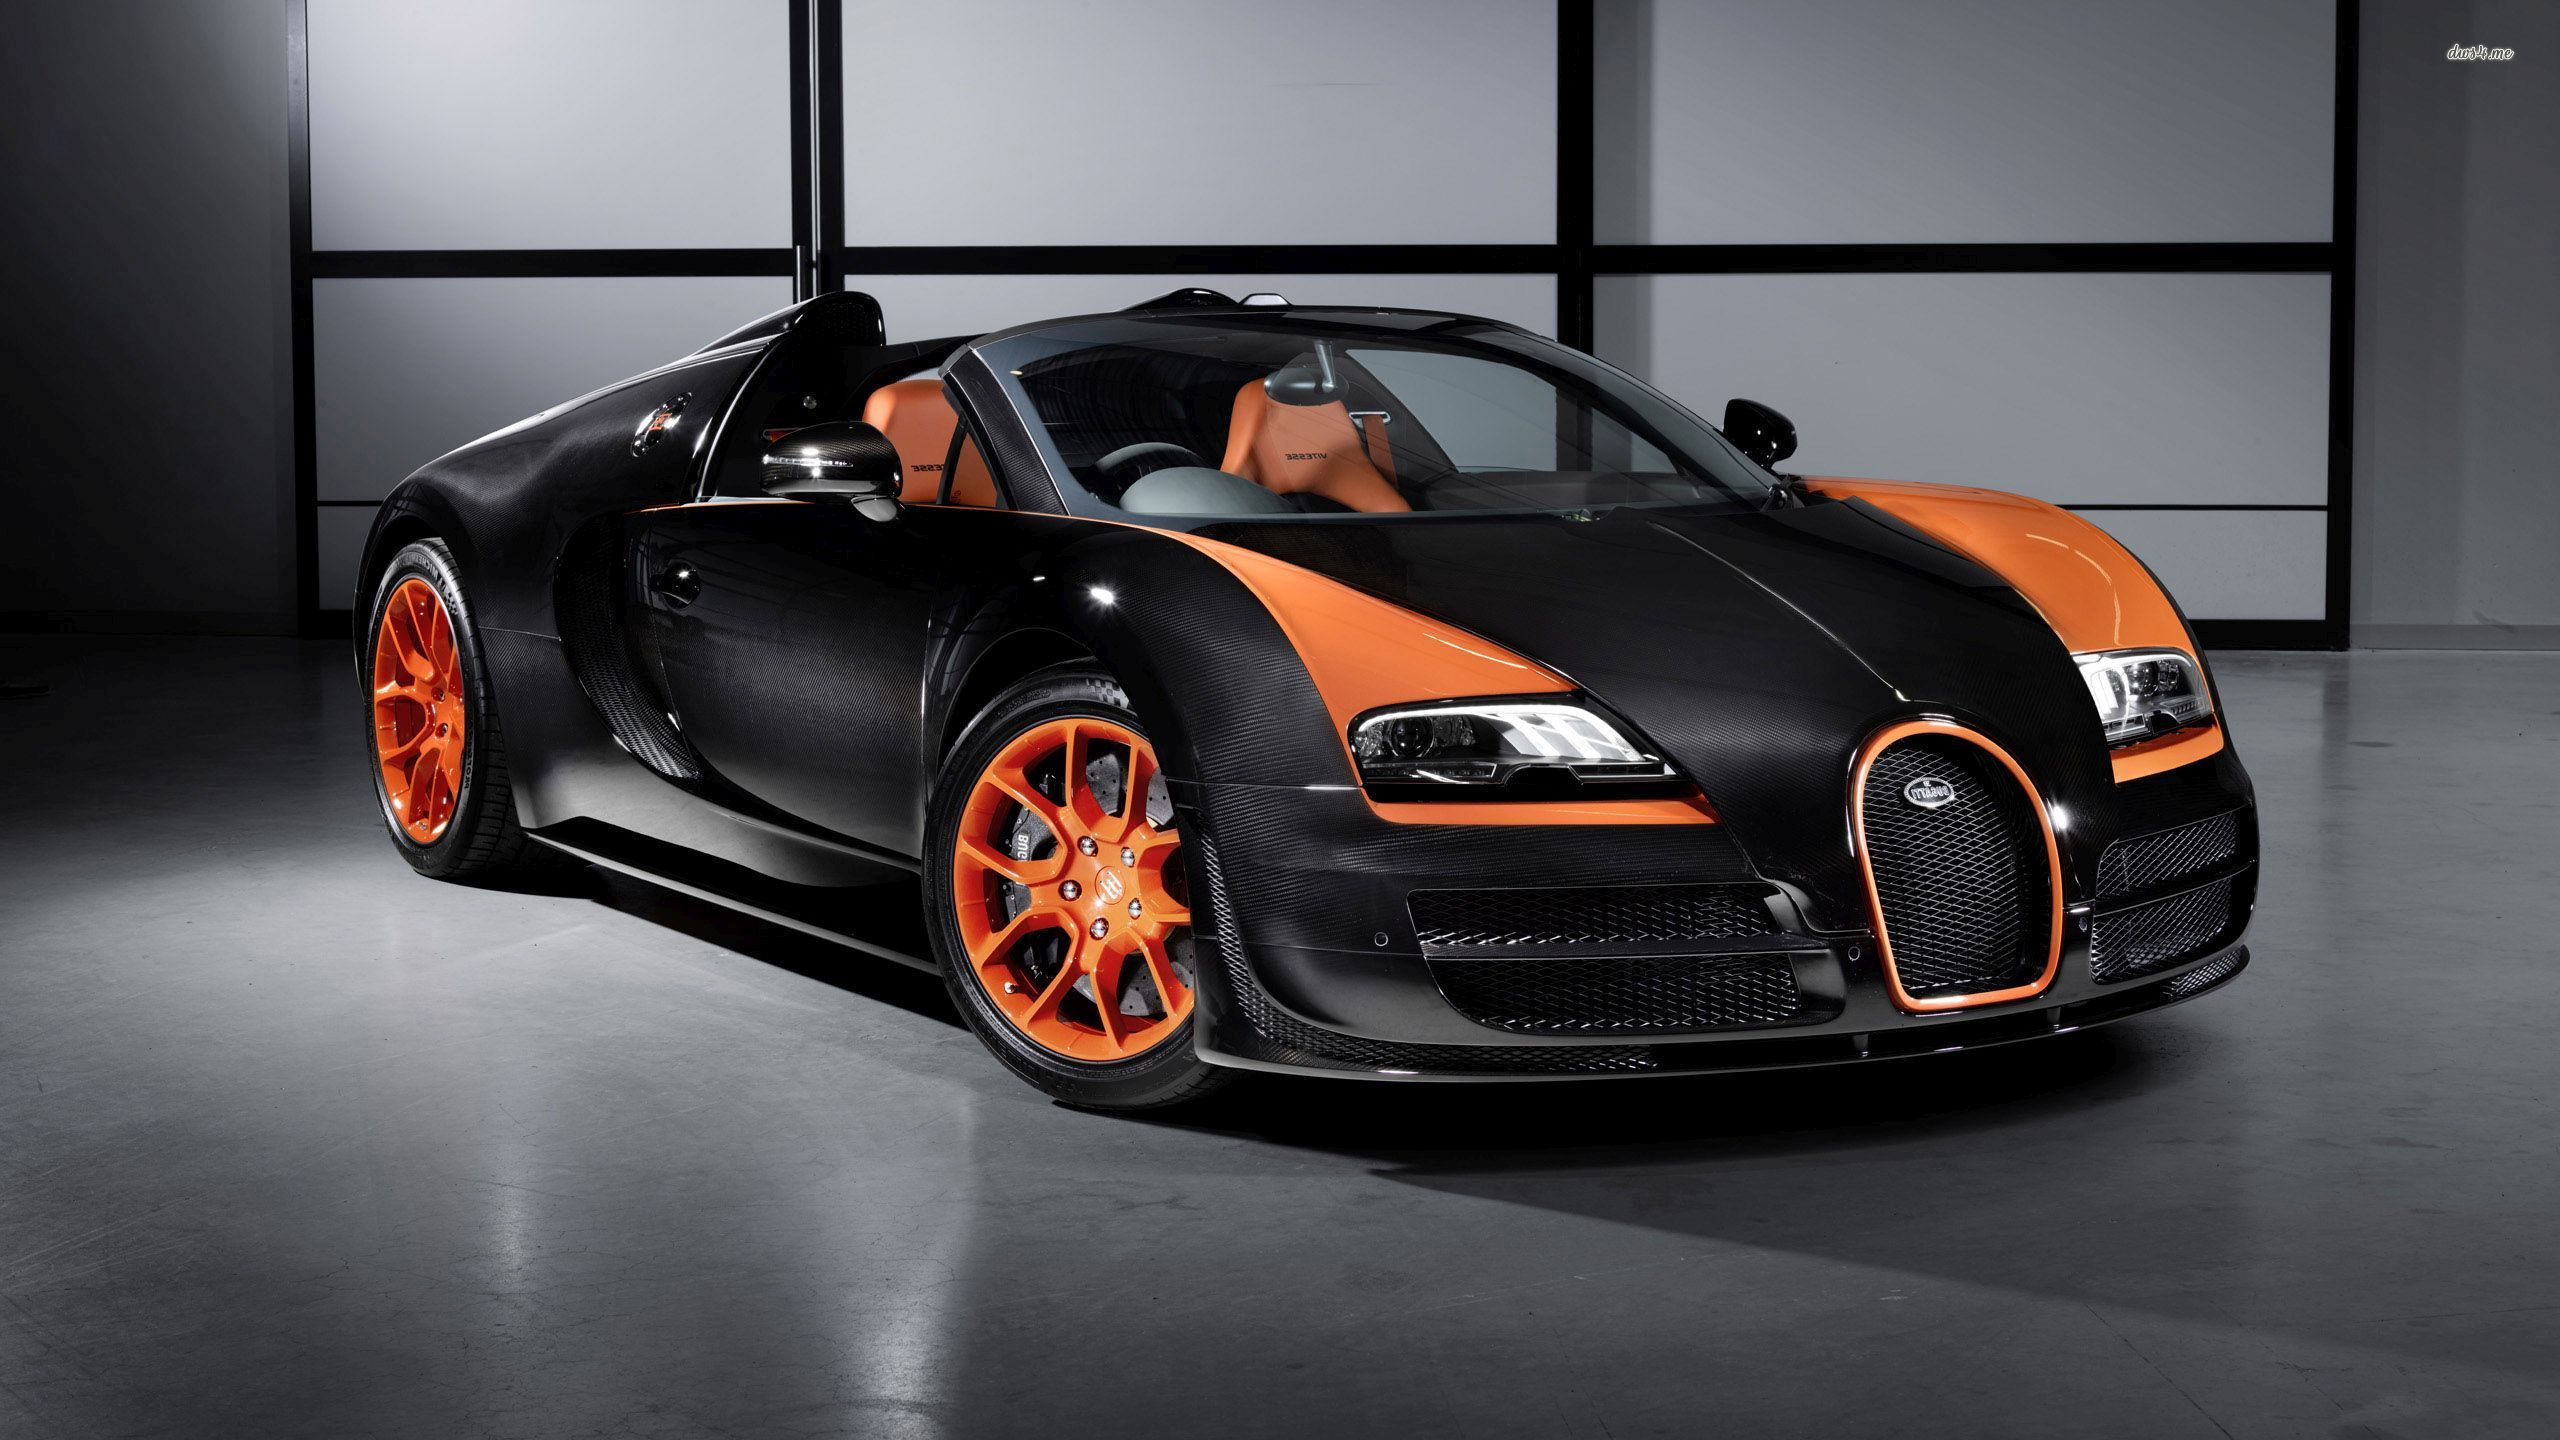 28231-bugatti-veyron-16-4-grand-sport-vitesse-2560x1440-car-wallpaper